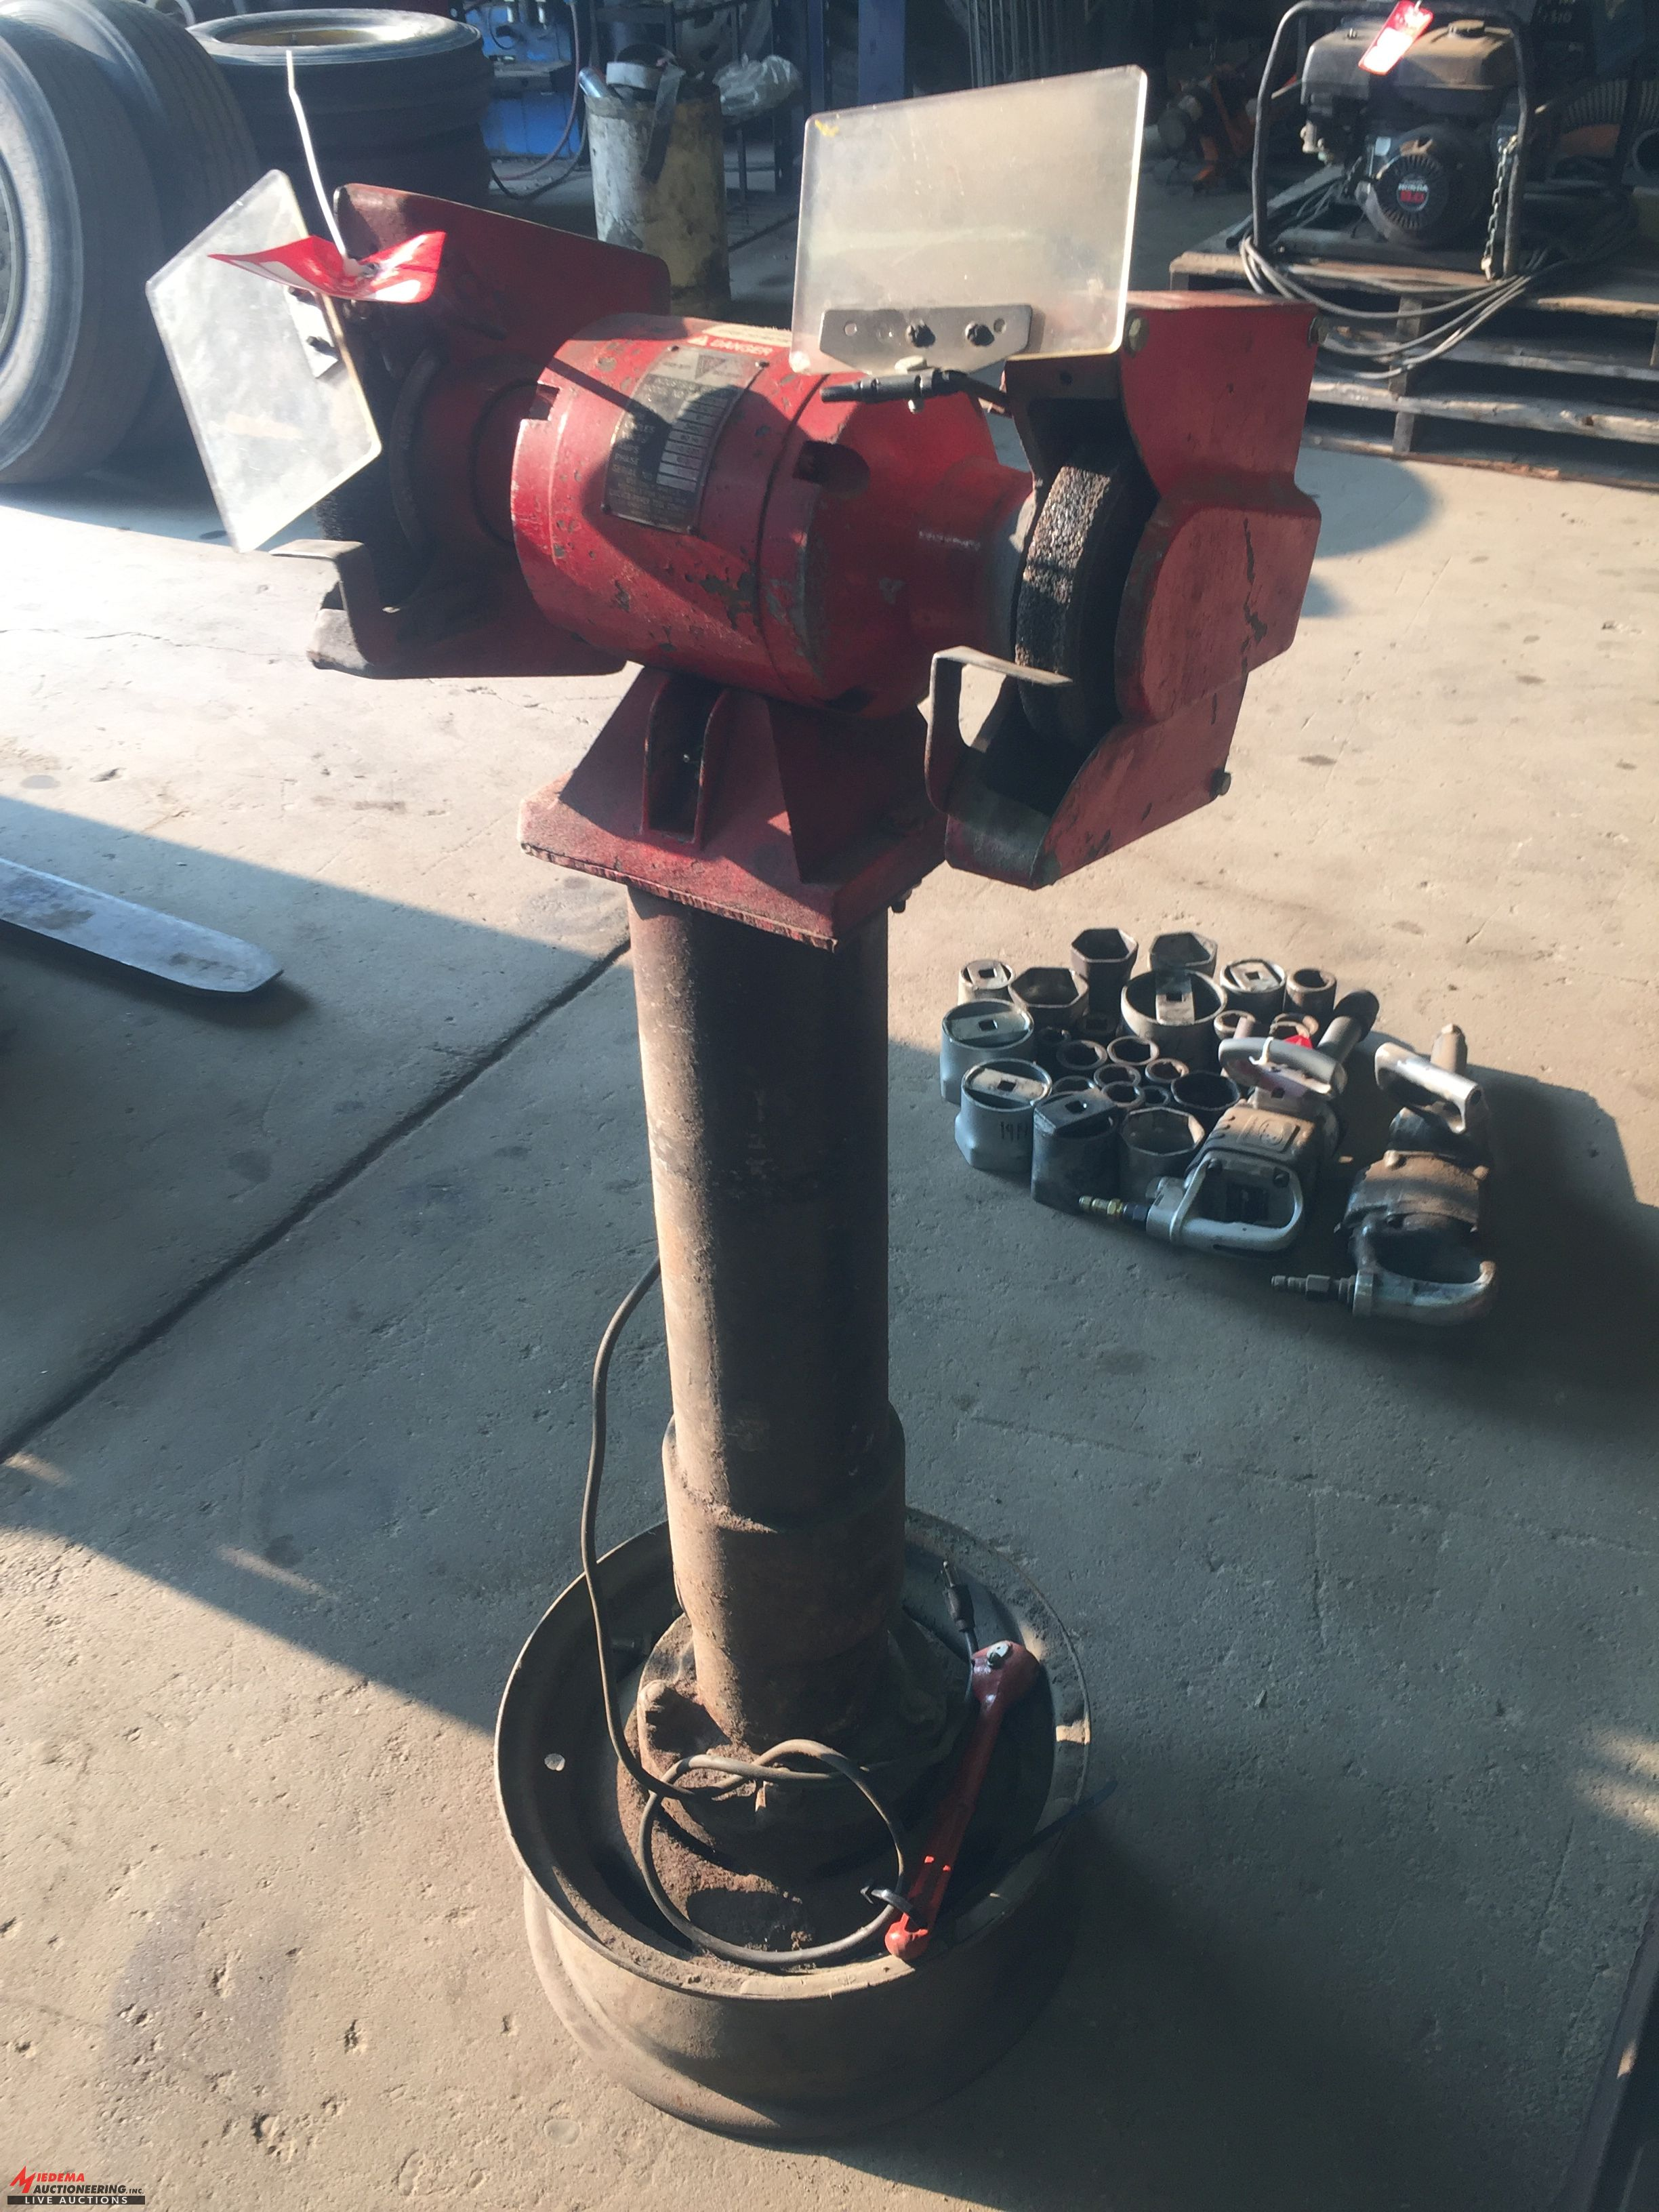 Lot 31 - PEDESTAL GRINDER/WIRE WHEEL [LOCATION: EAST WINANS STREET LOCATION]